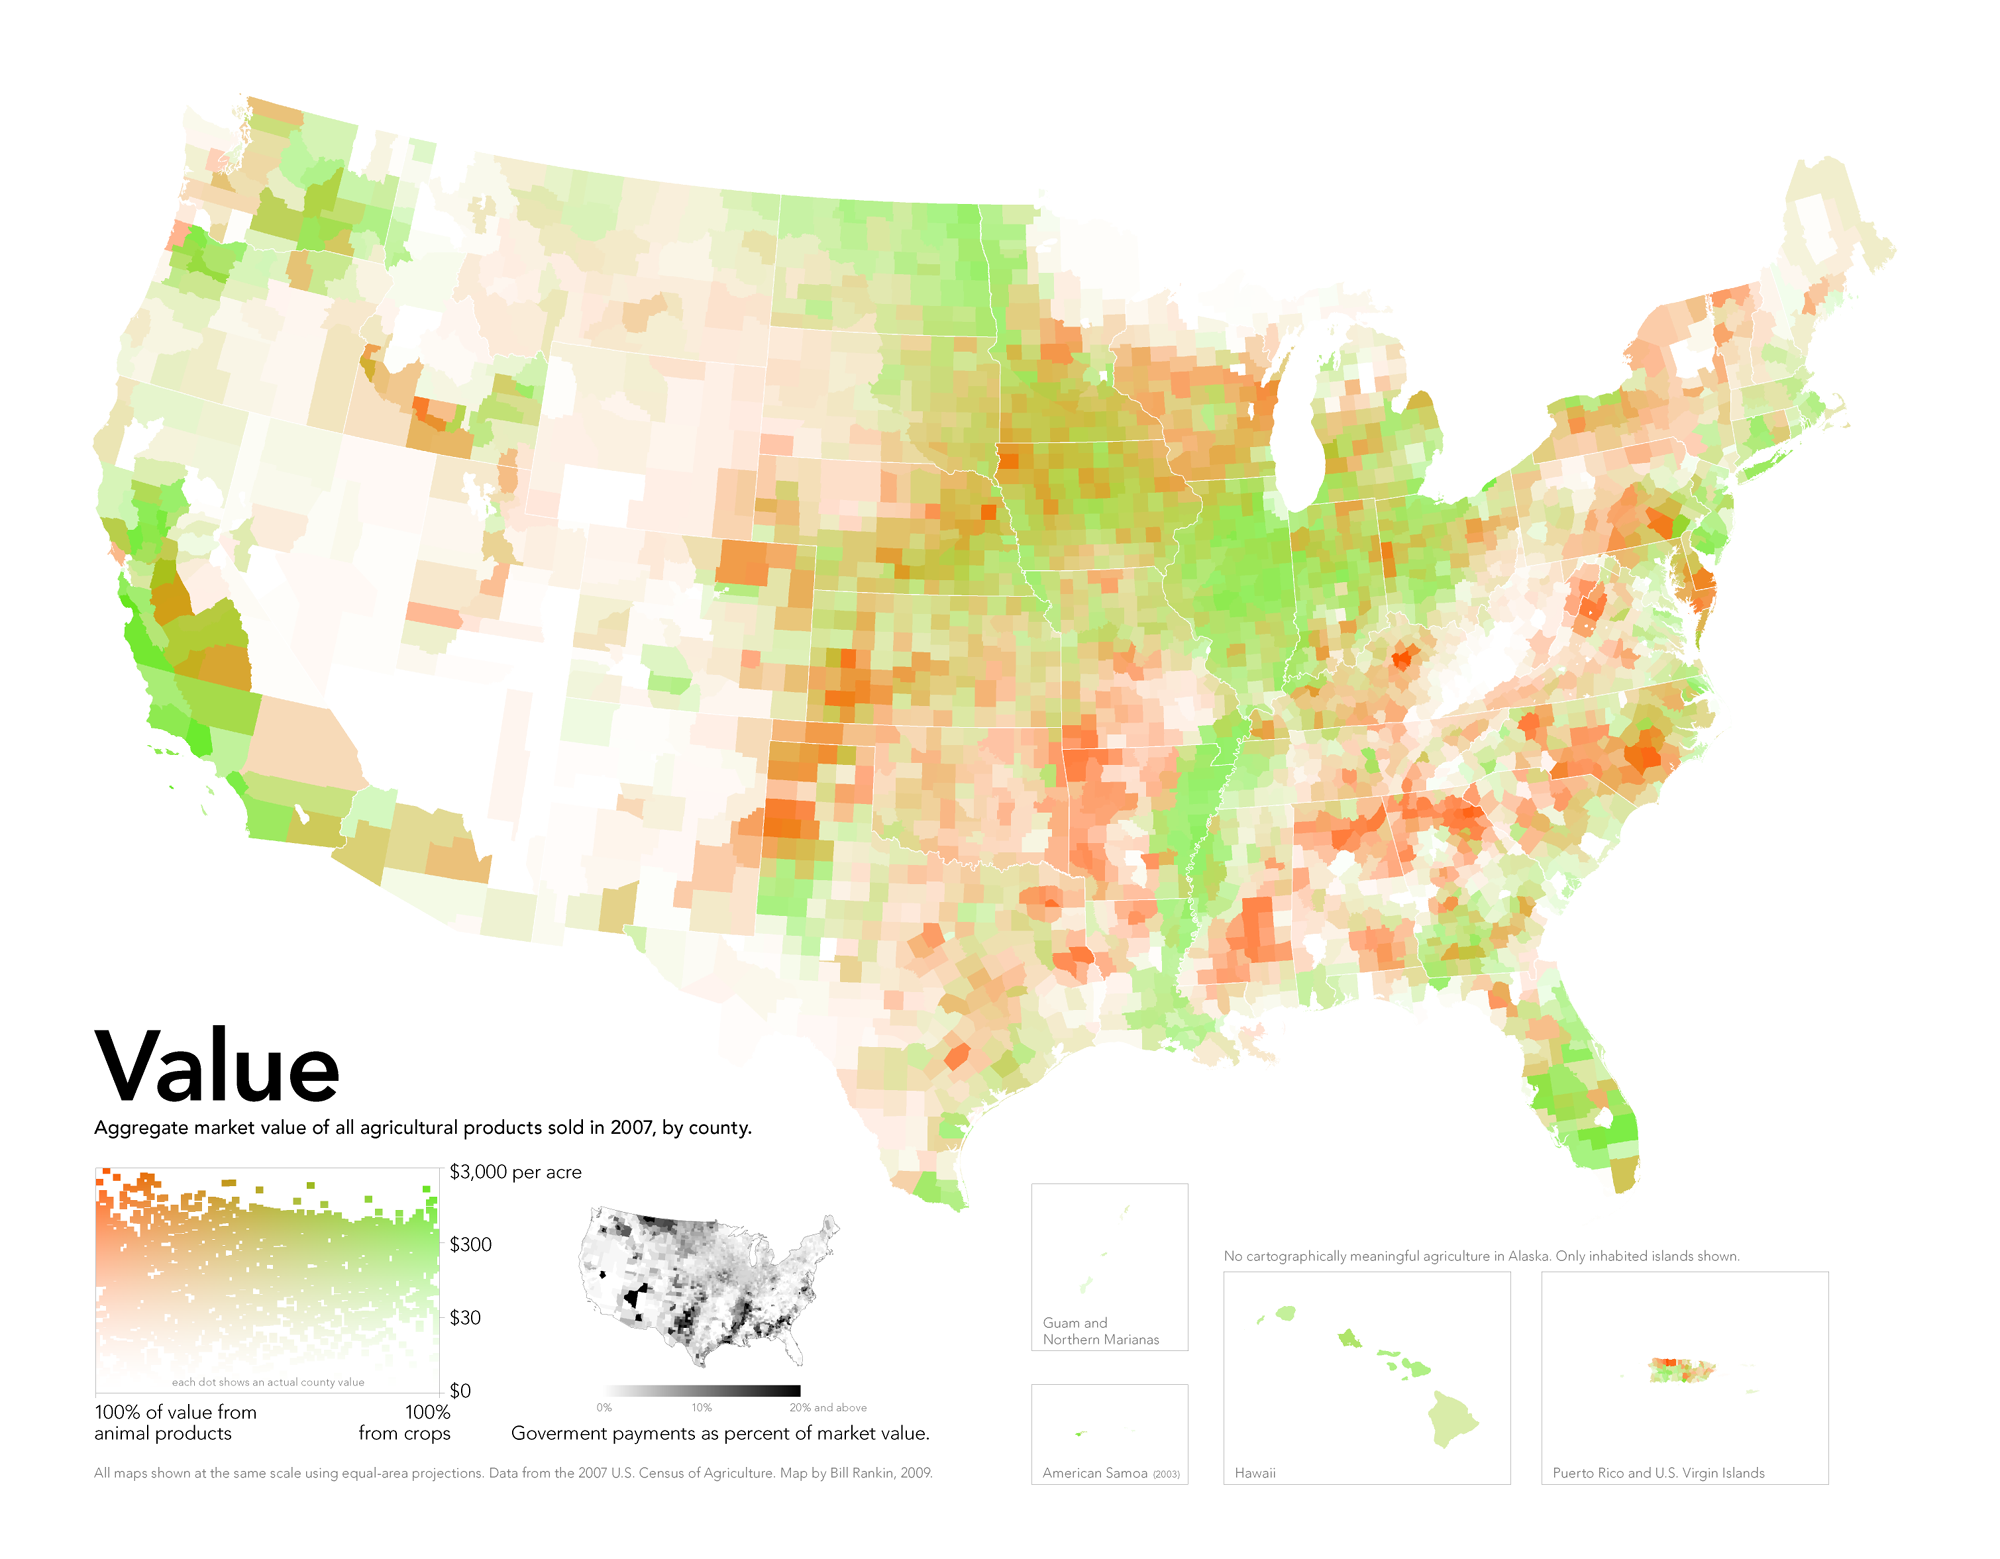 Maps That Explain Food In America Livestock And Food - Agricultural products grown in the us map